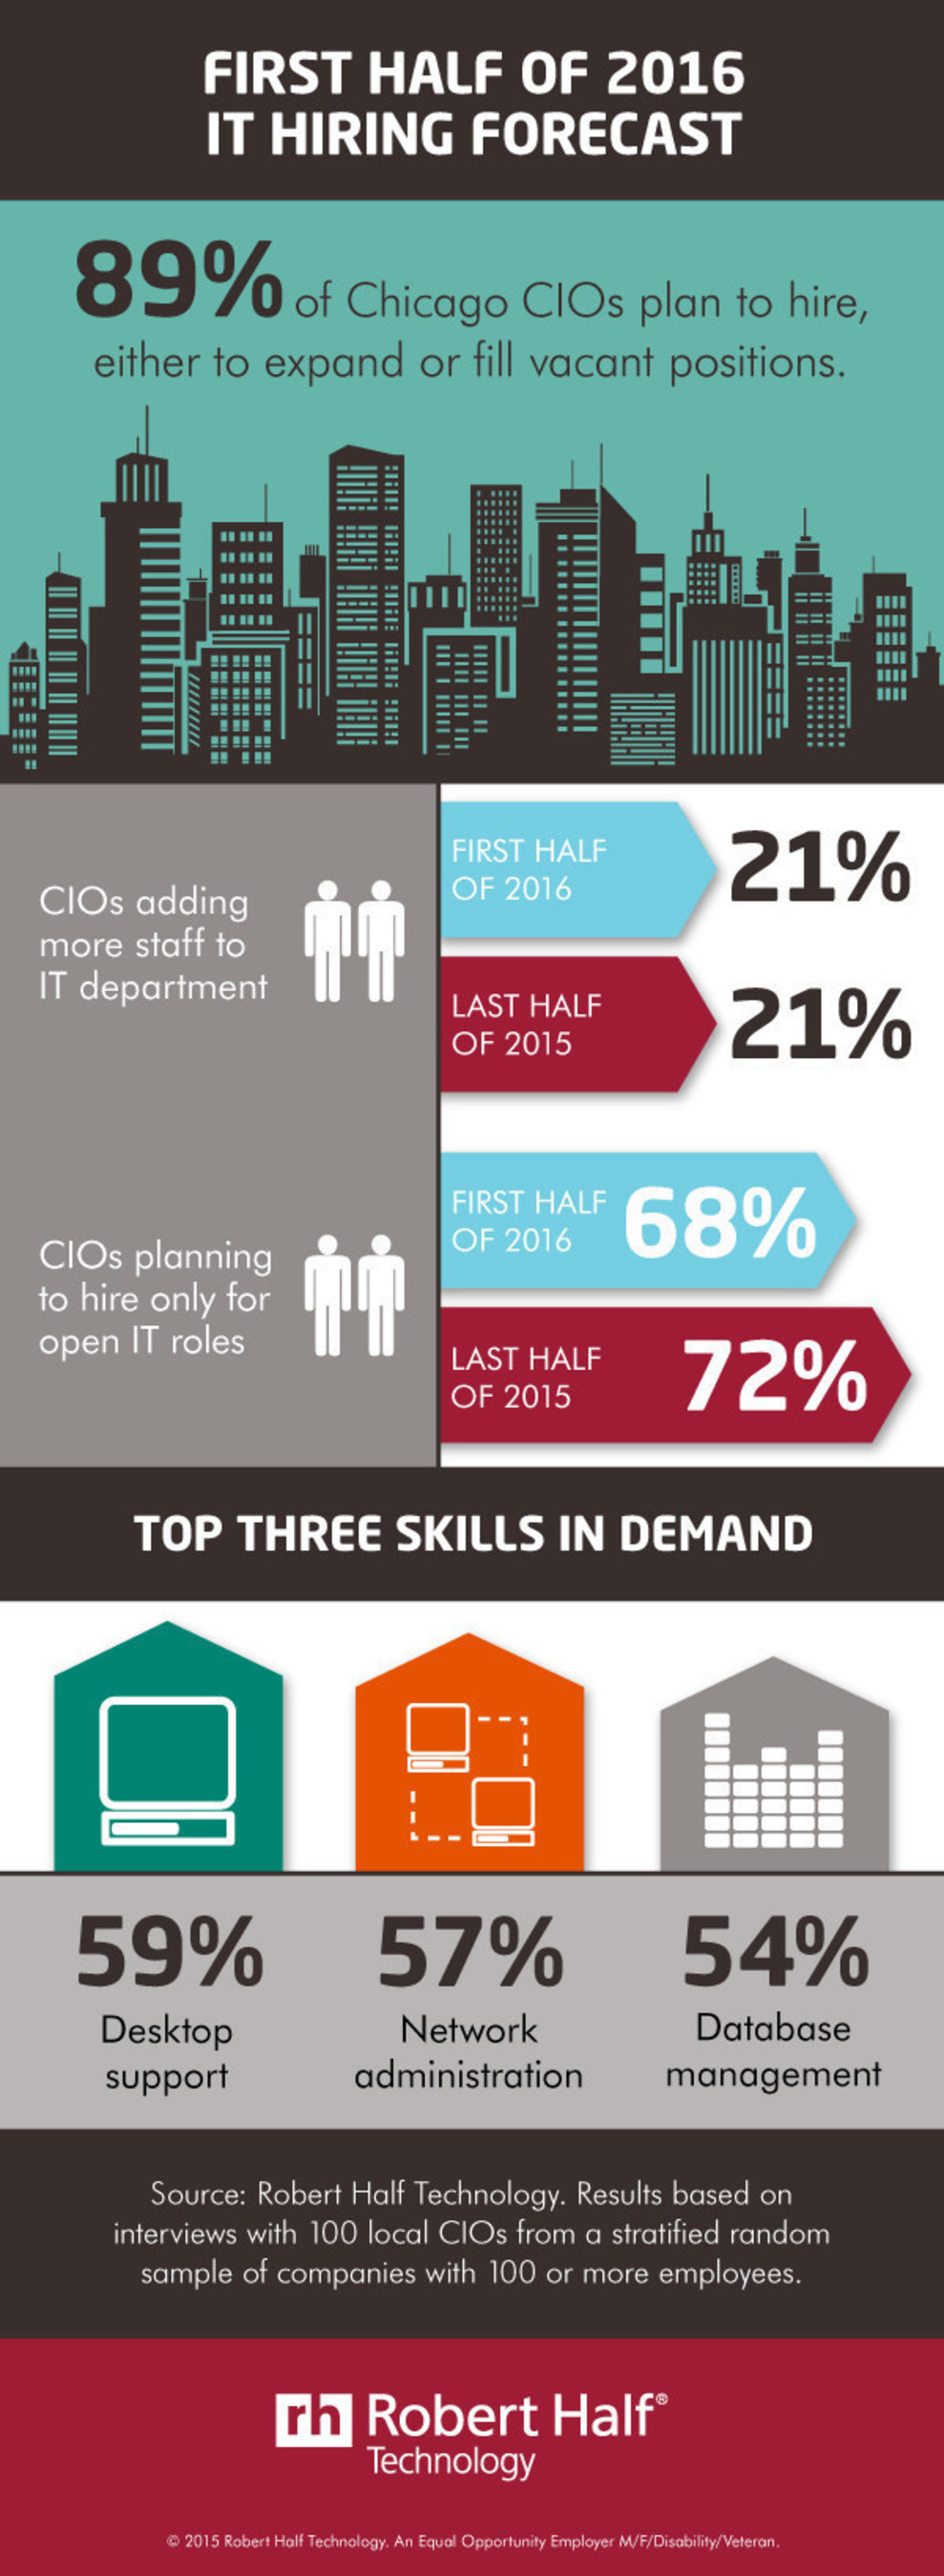 Robert Half Technology reveals Chicago IT hiring forecast for the first half of 2016.